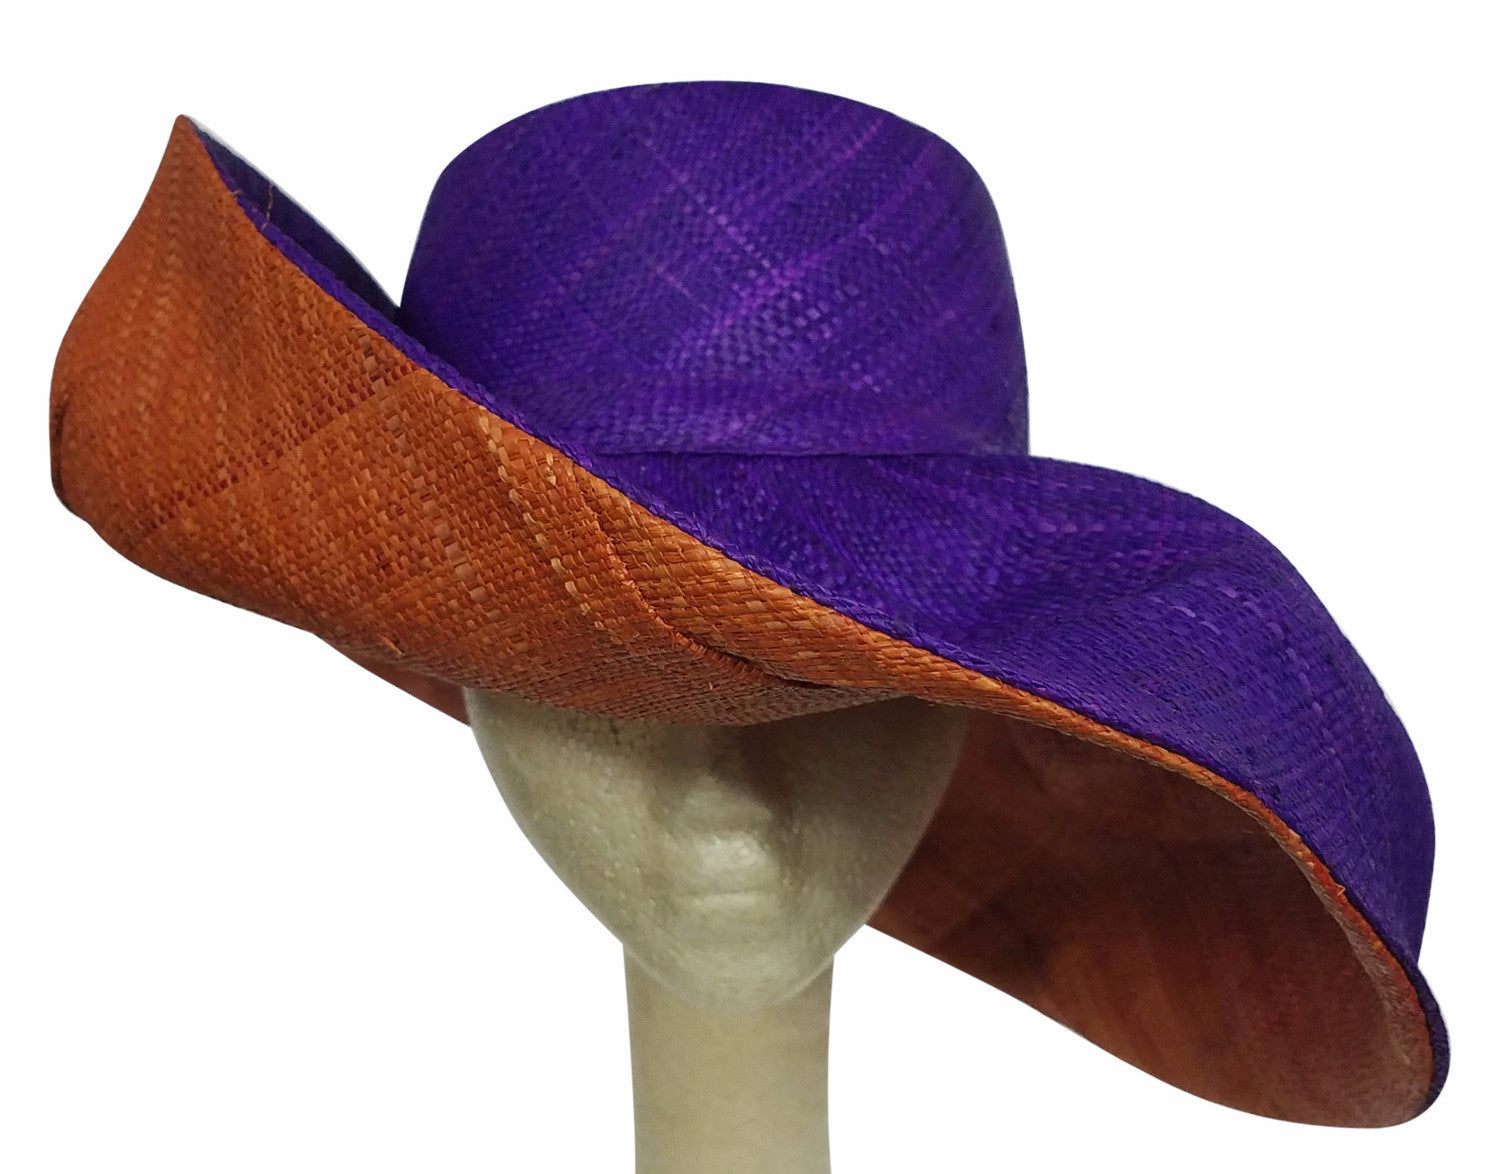 Adedagbo: Authentic African Hand Made Purple and Burnt Orange Madagascar Big Brim Raffia Sun Hat